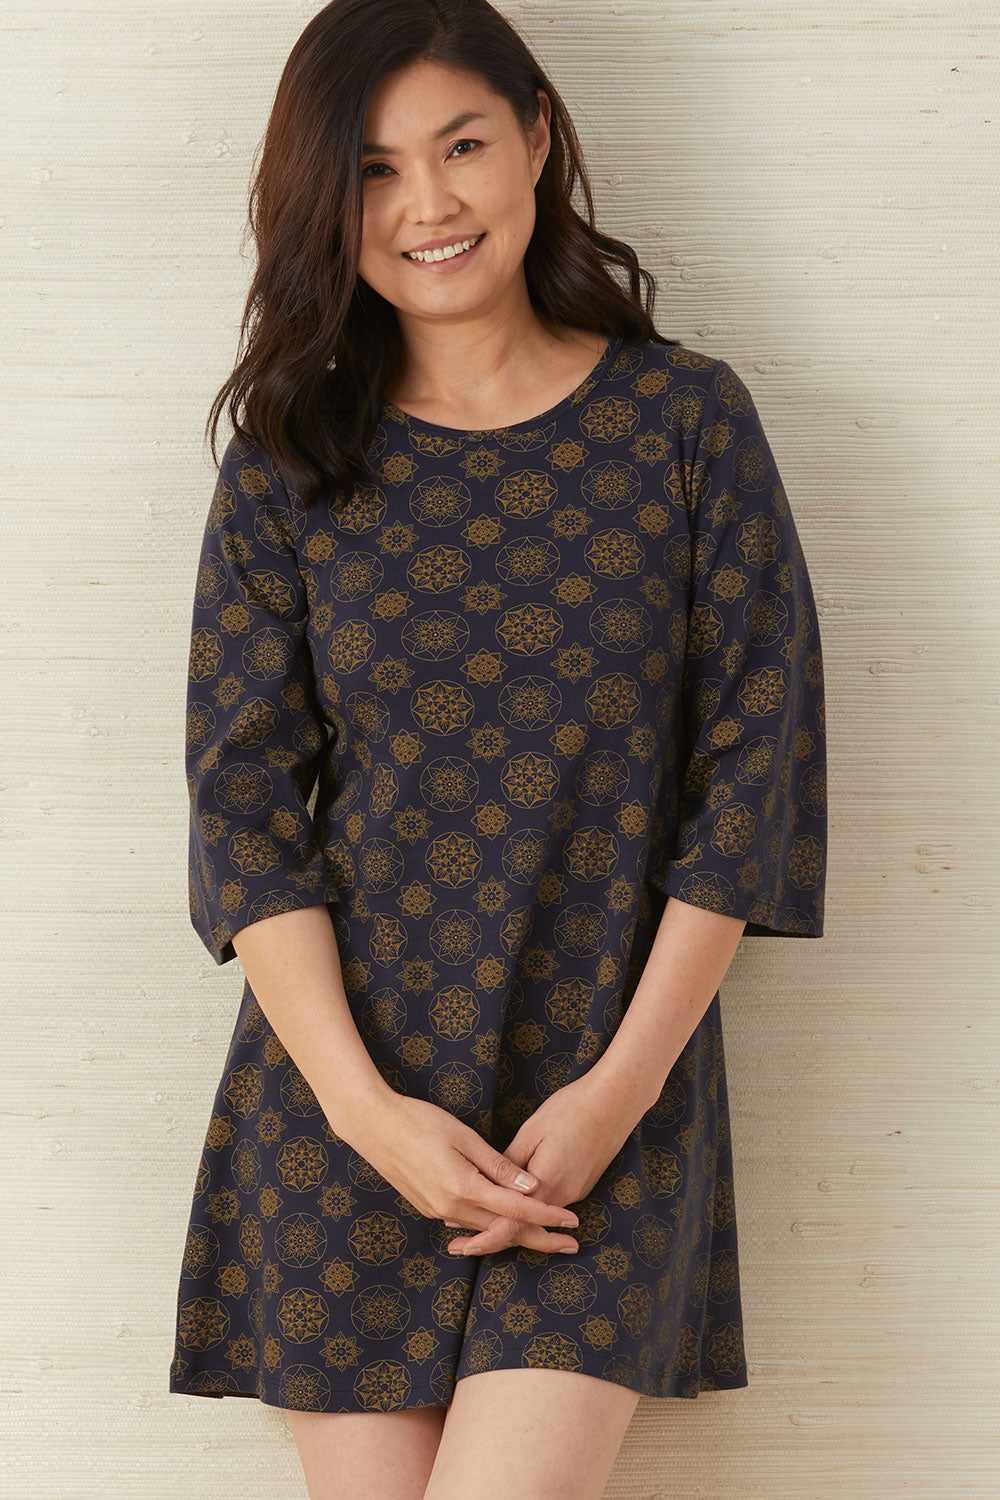 fair-indigo-womens-fair-trade-organic-shift-dress-with-bell-sleeves